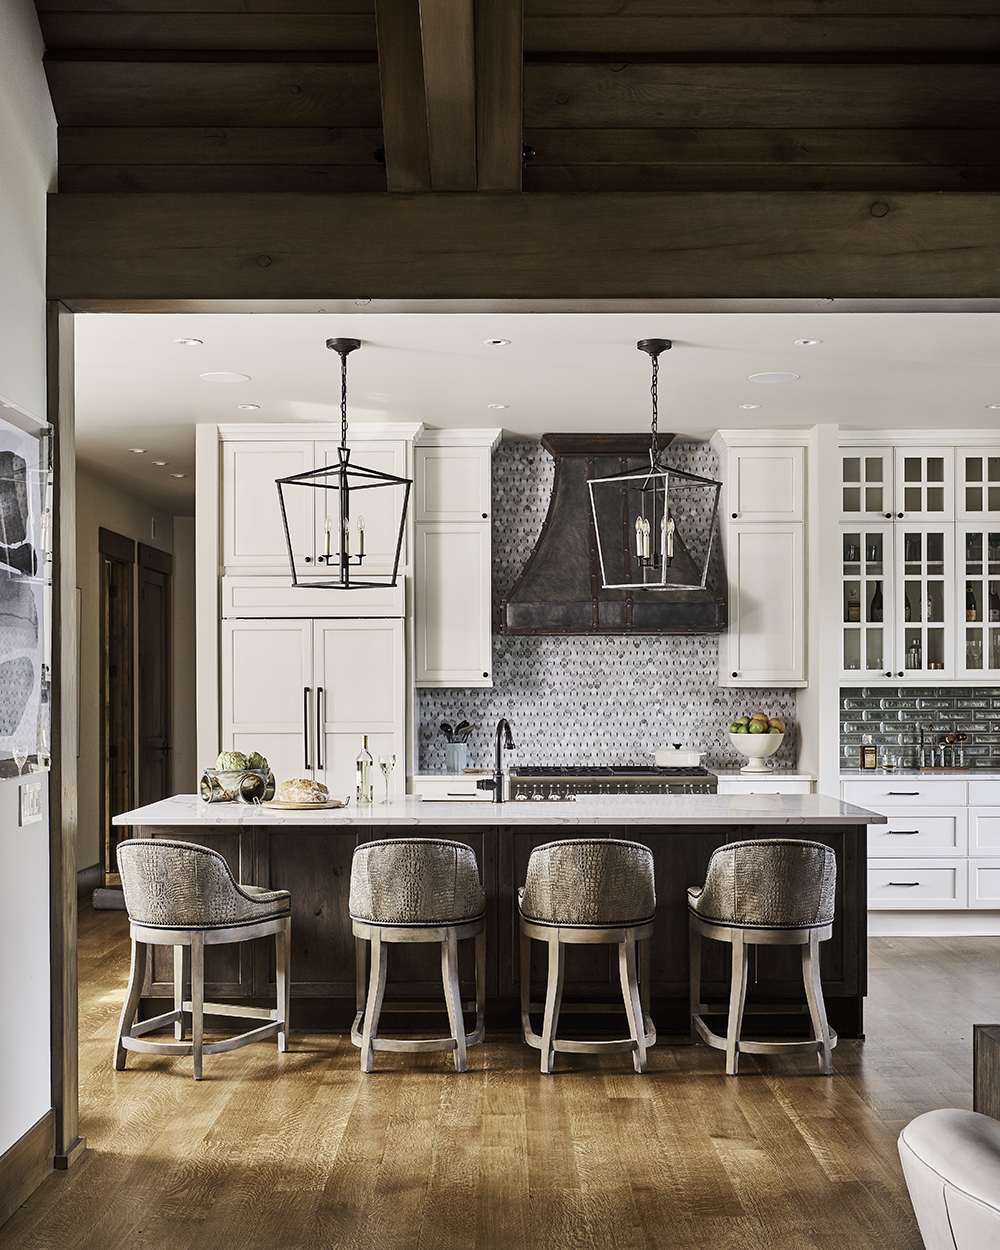 white kitchen design, transitional kitchen design, island with barstools, transitional glass backsplash, black kitchen pendants, kitchen design, kitchen inspiration, seattle kitchen designer, woodinville kitchen designer, wood ceiling, white kitchen wood island